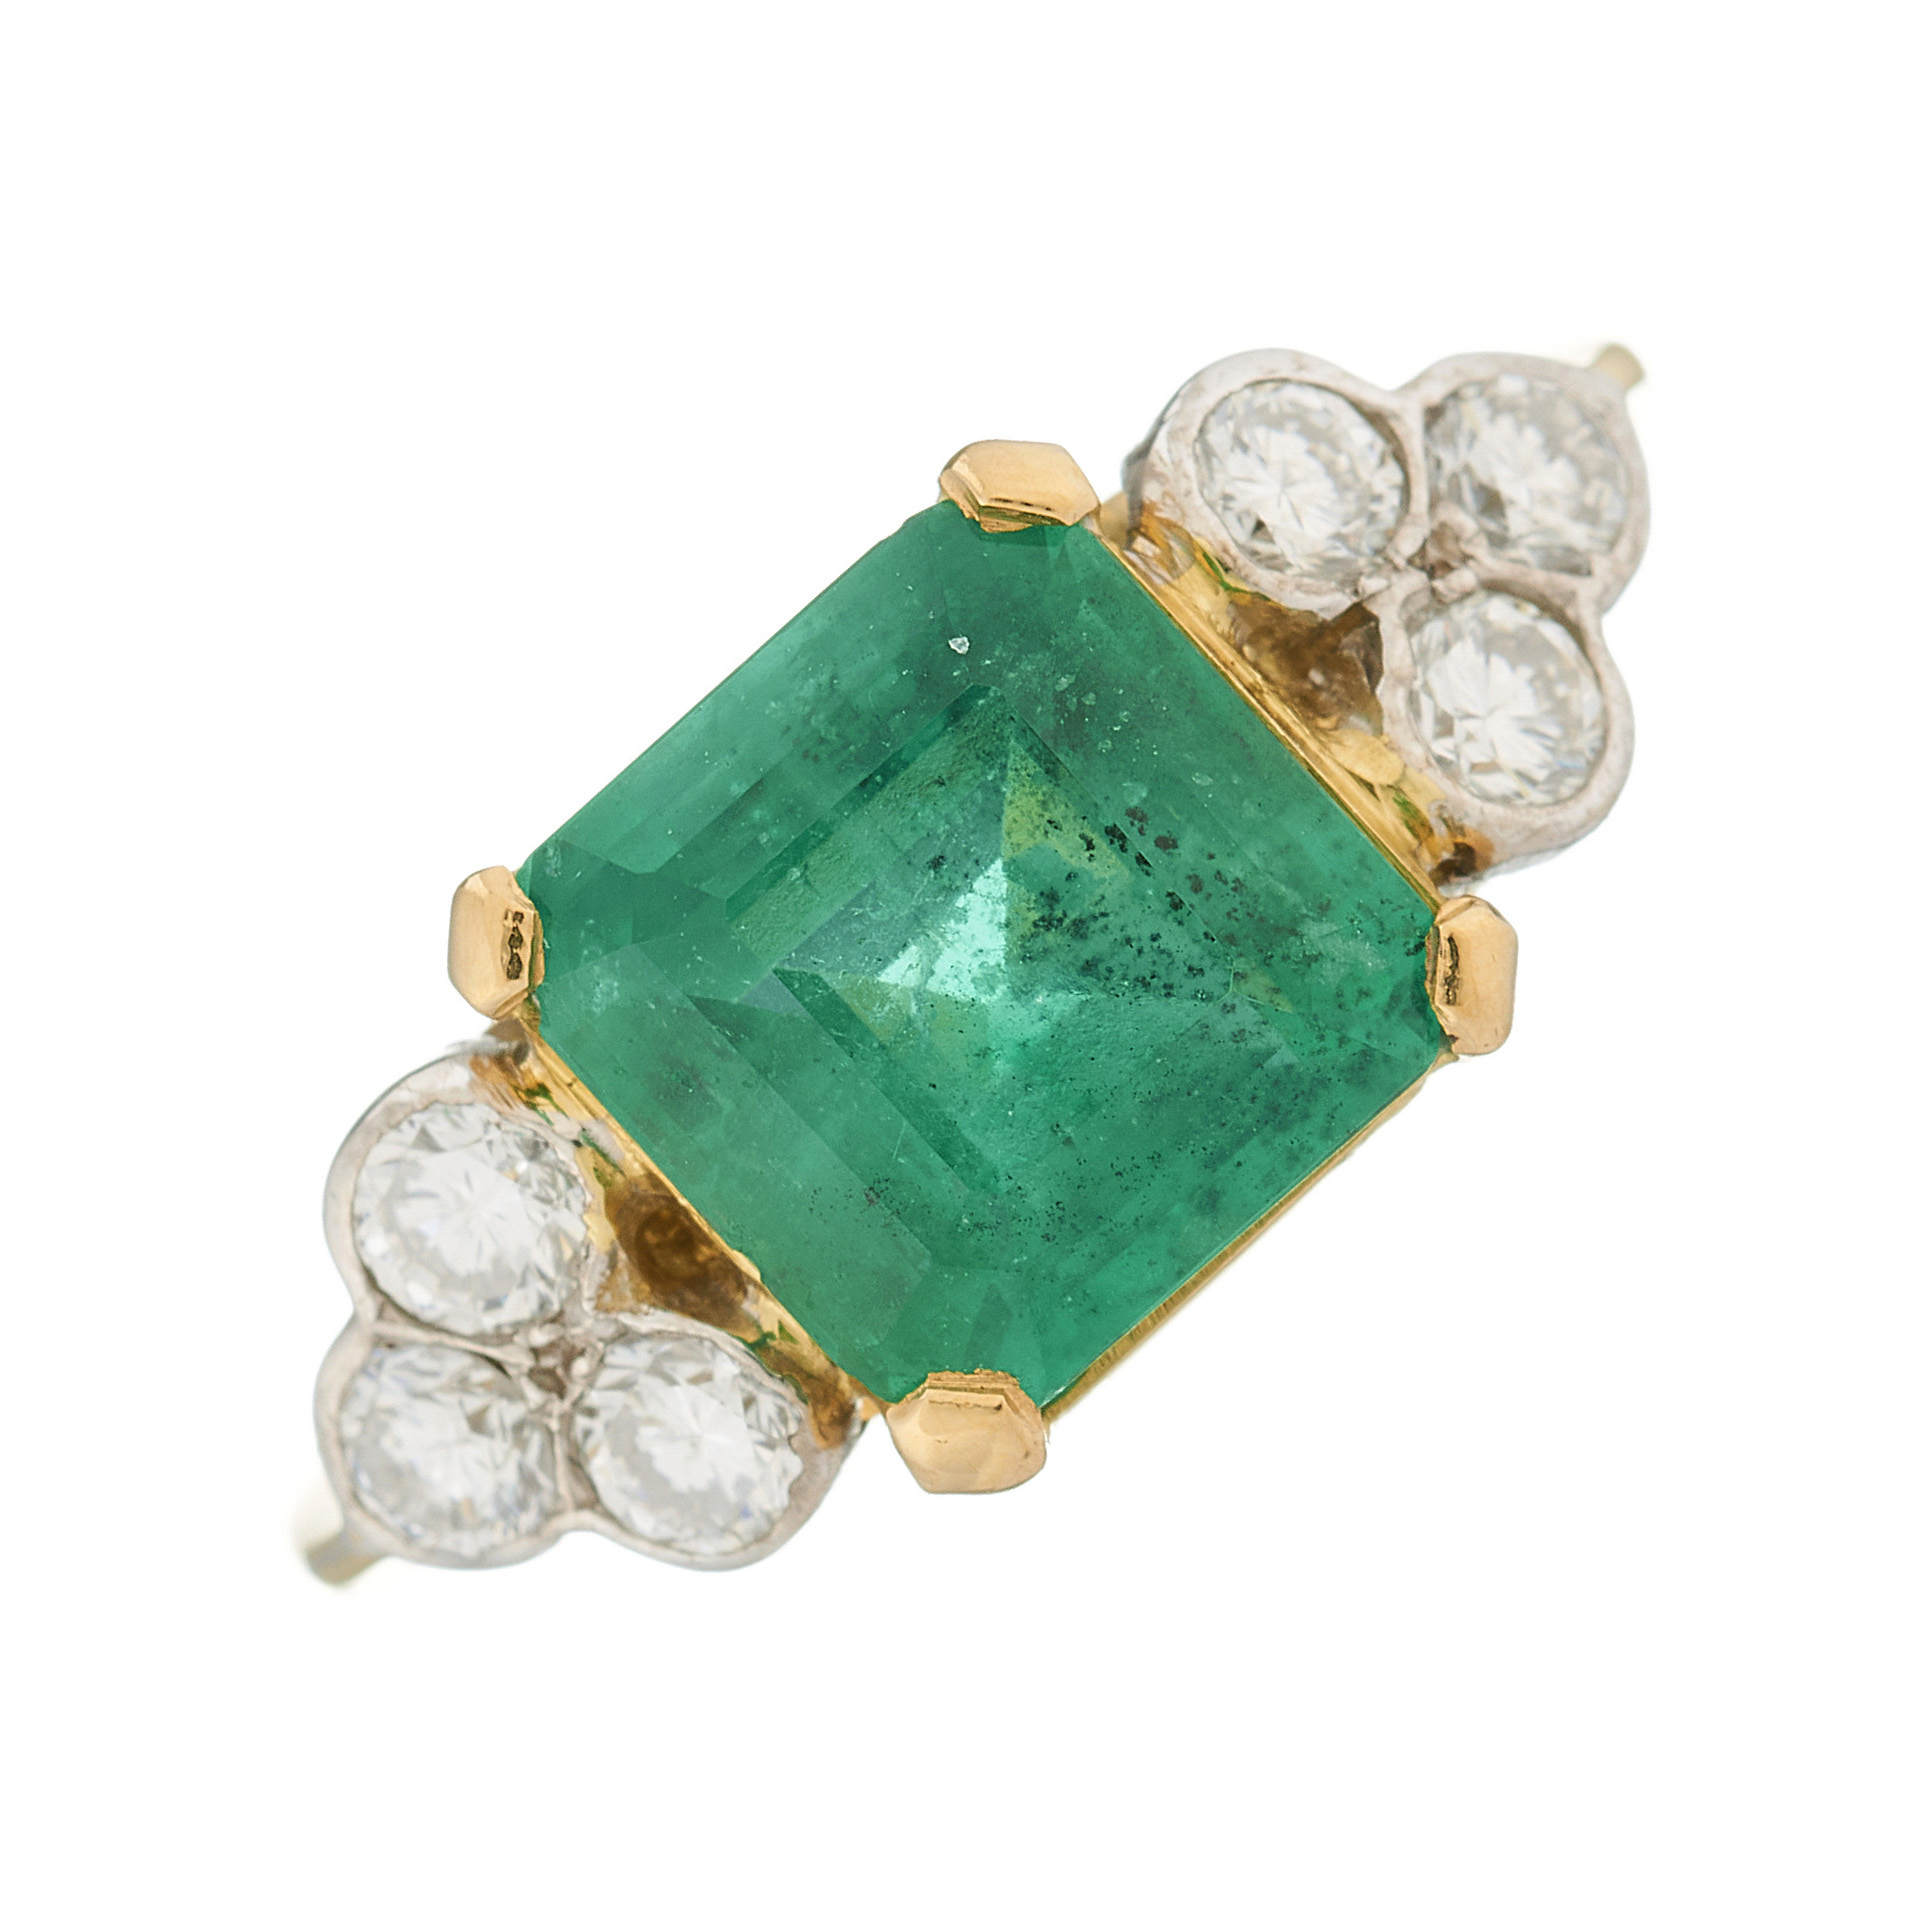 An 18ct gold emerald and diamond dress ring